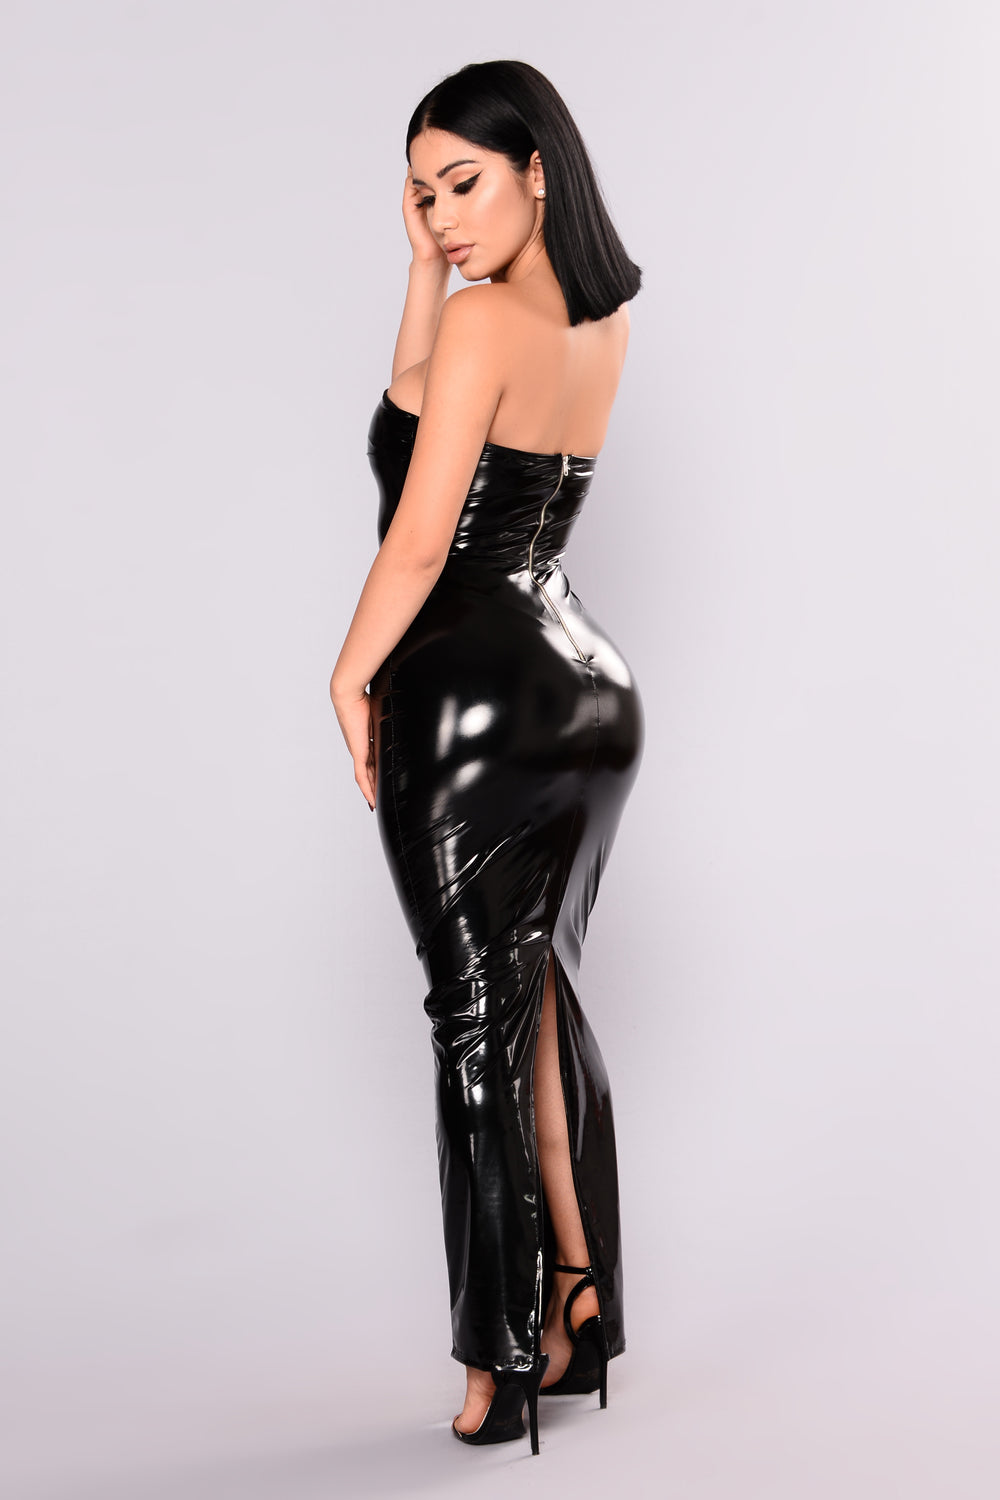 New York Fashion Week Latex Dress - Black